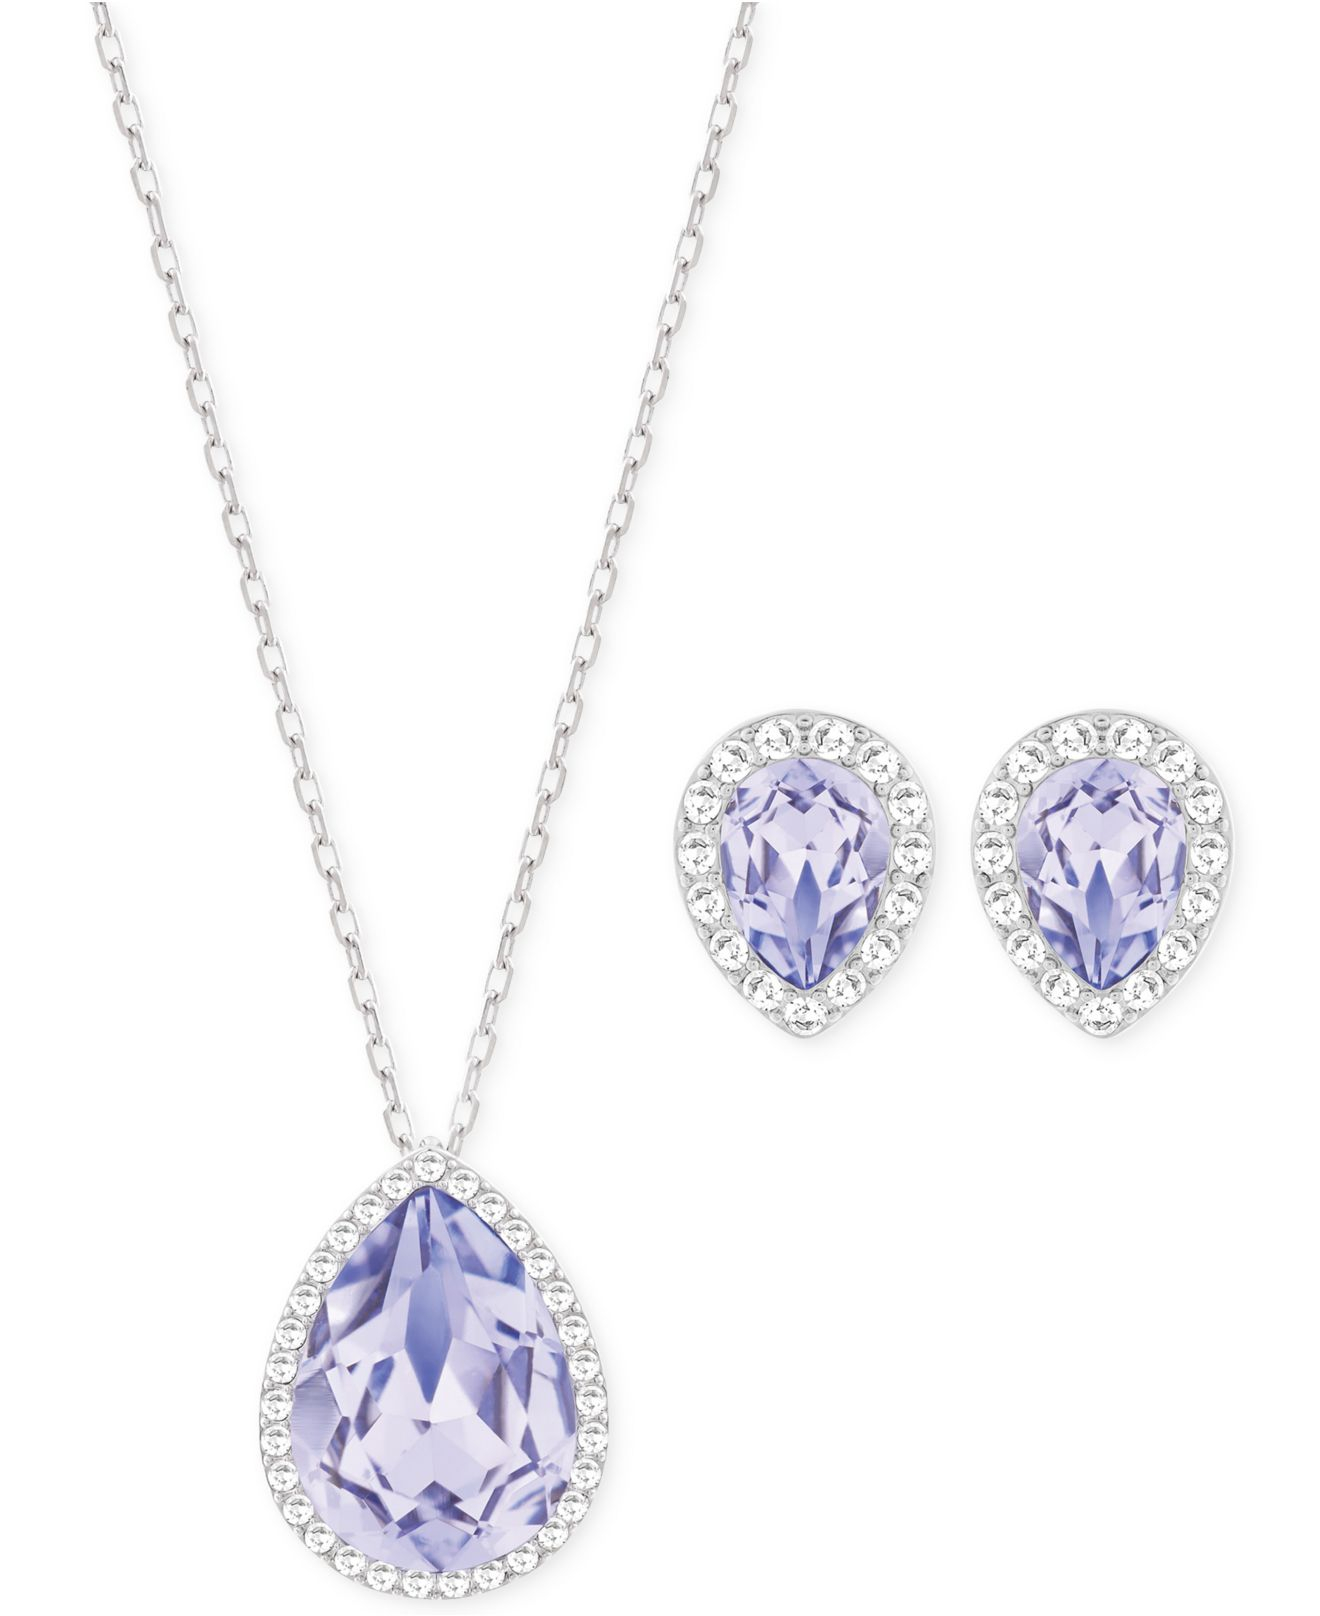 Silver Tone Lavender Crystal Necklace And Stud Earrings Set